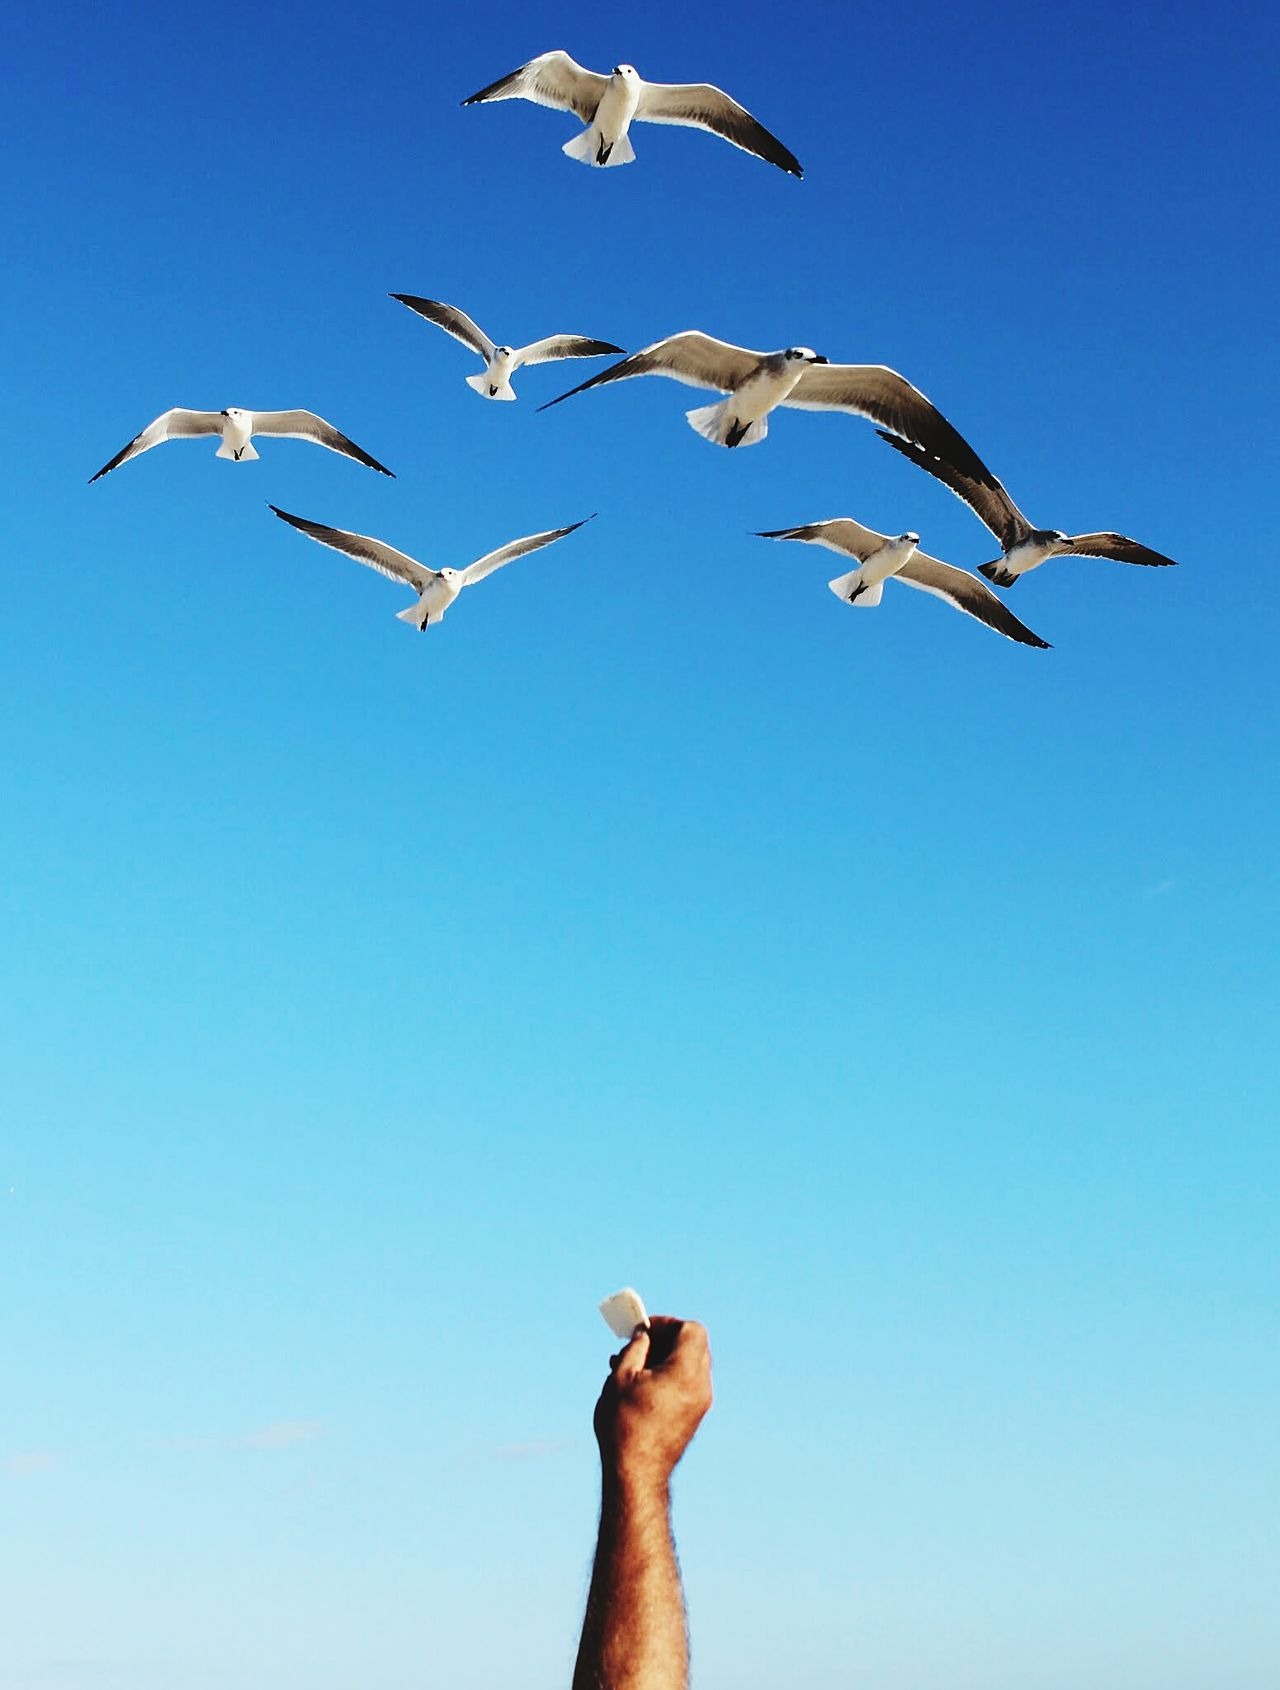 Seagulls Feeding  Birds Arm Blue Offering